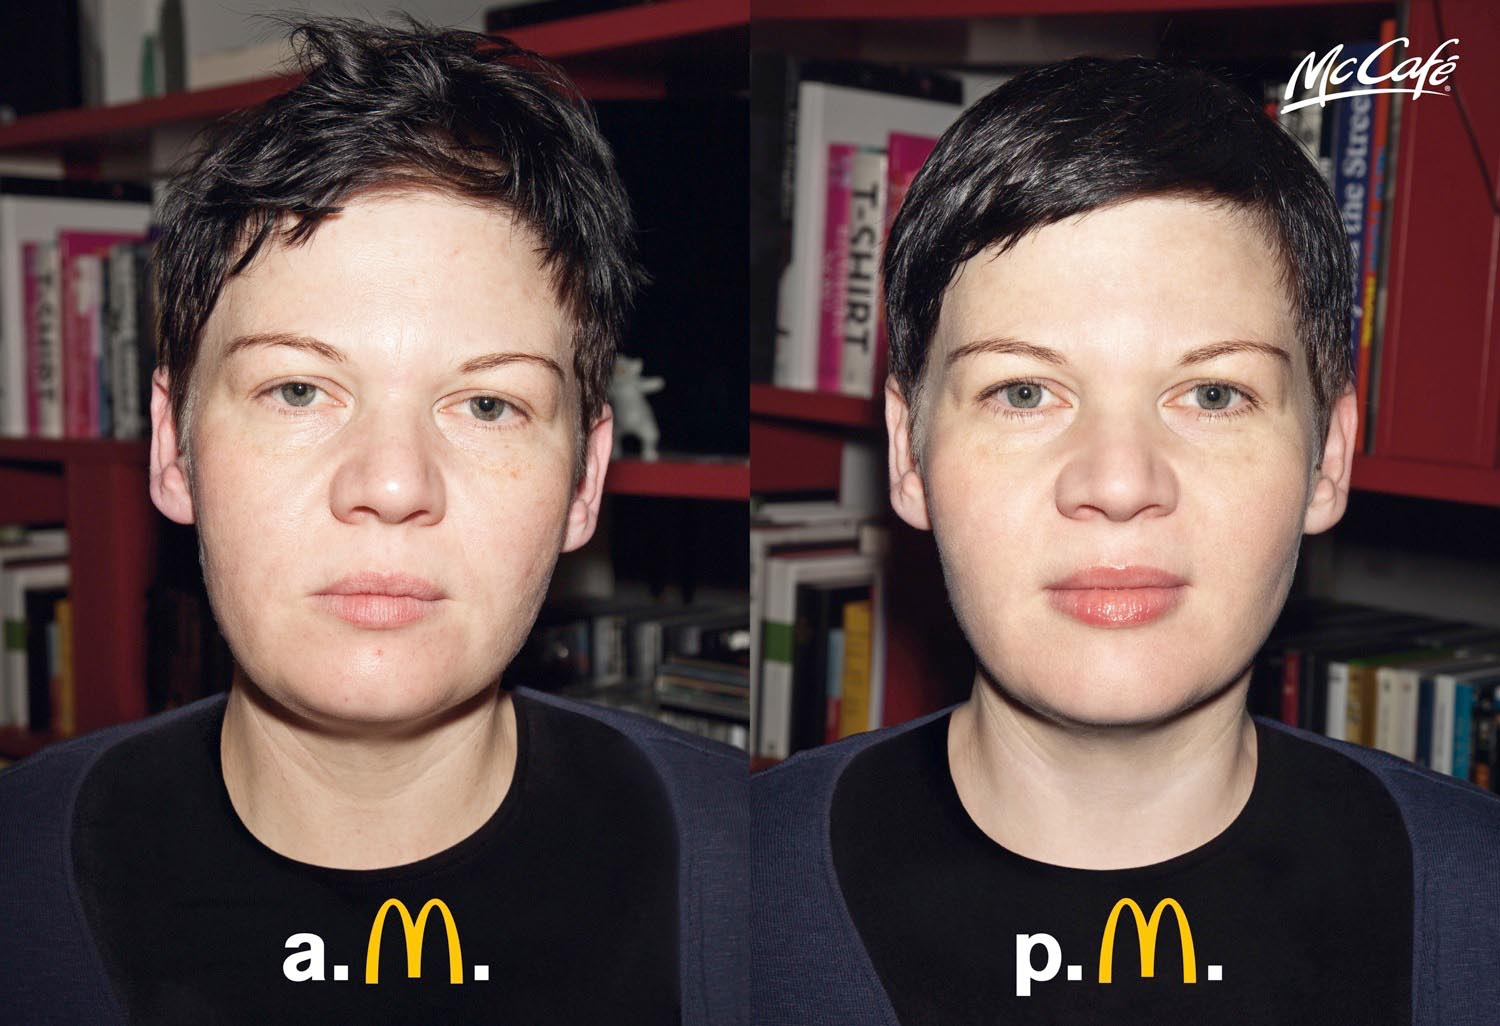 portrait face woman women morning tired sleep mc donald's mcdonald mcdonalds